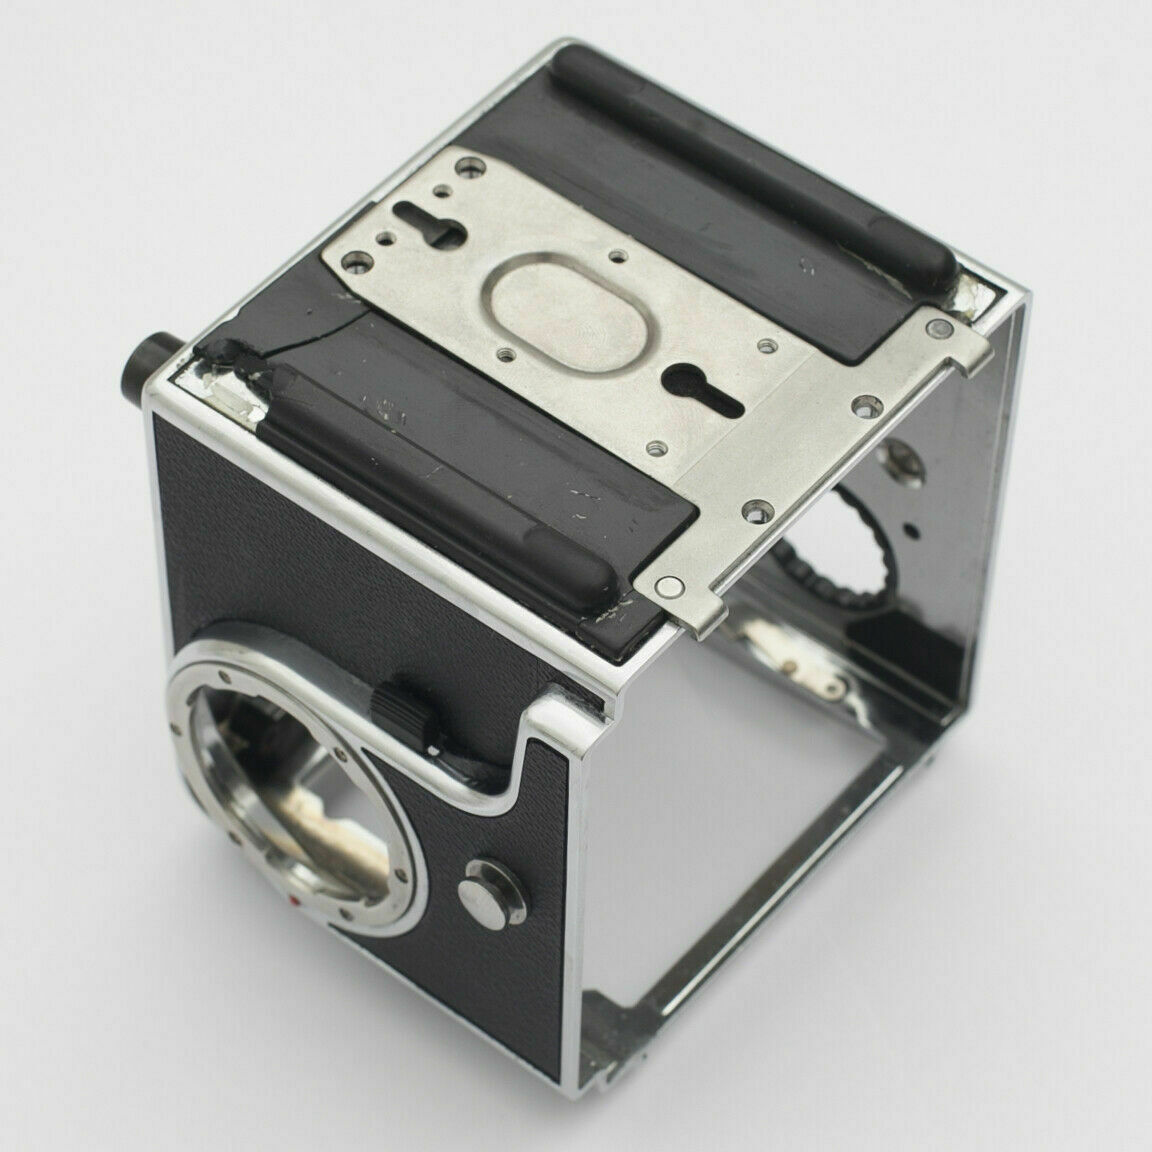 как выглядит 2x pieces Hasselblad base bottom plate replace for Broken Repair Parts 501 503 фото